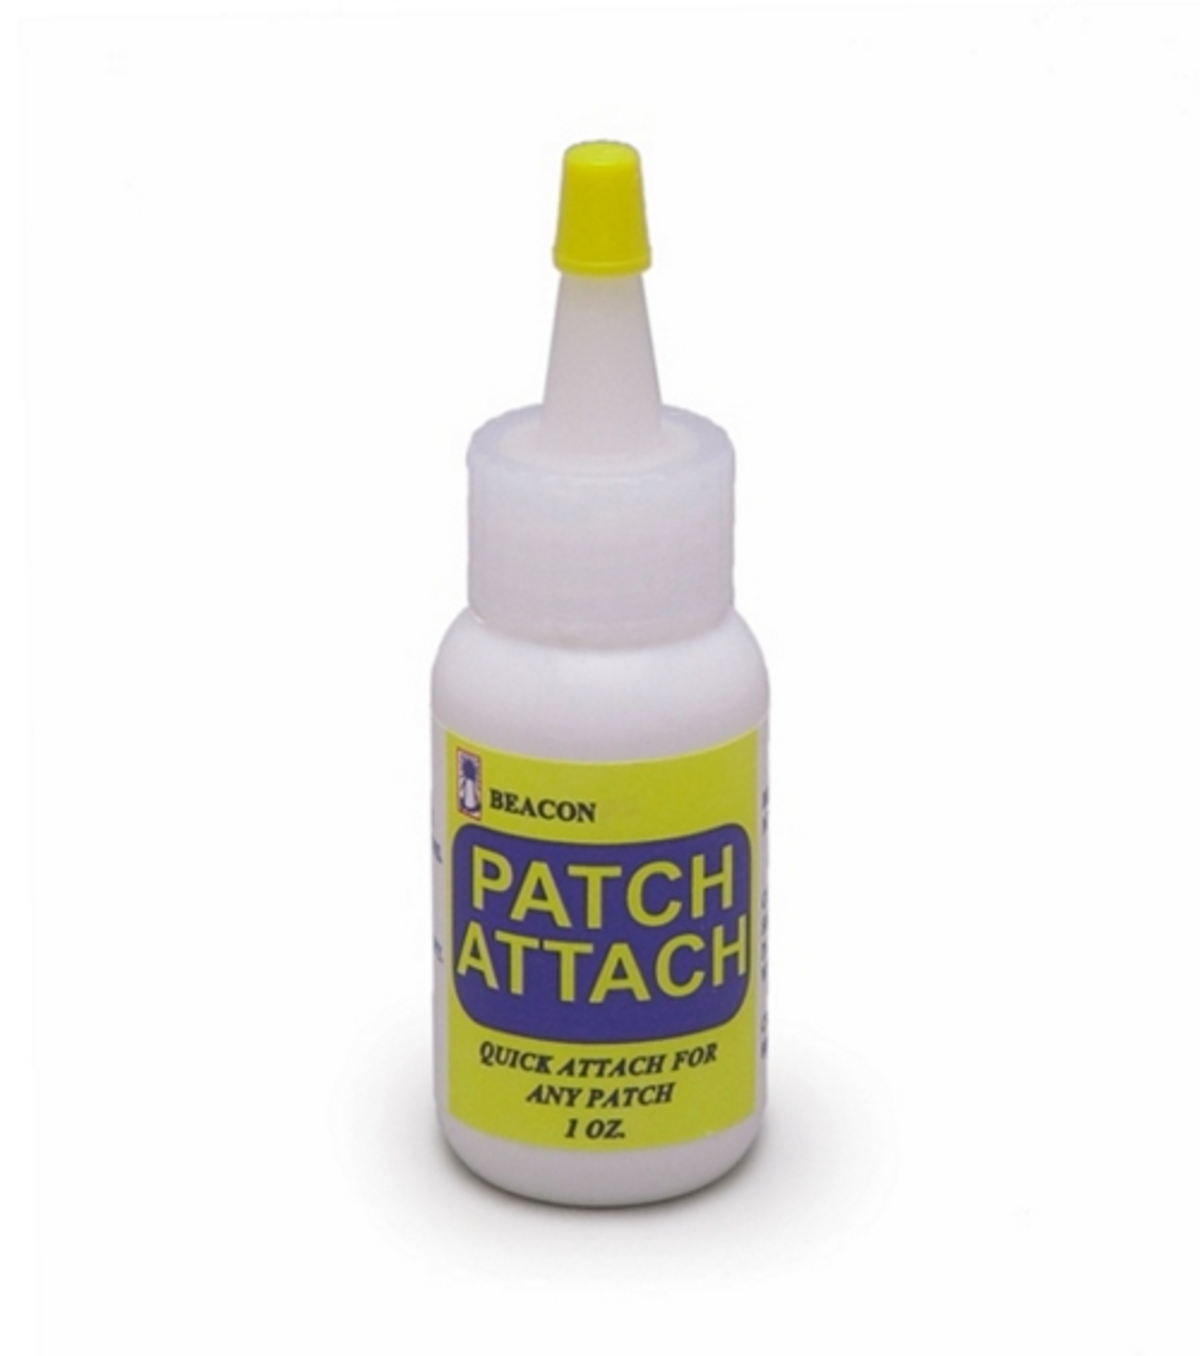 patch attach directions